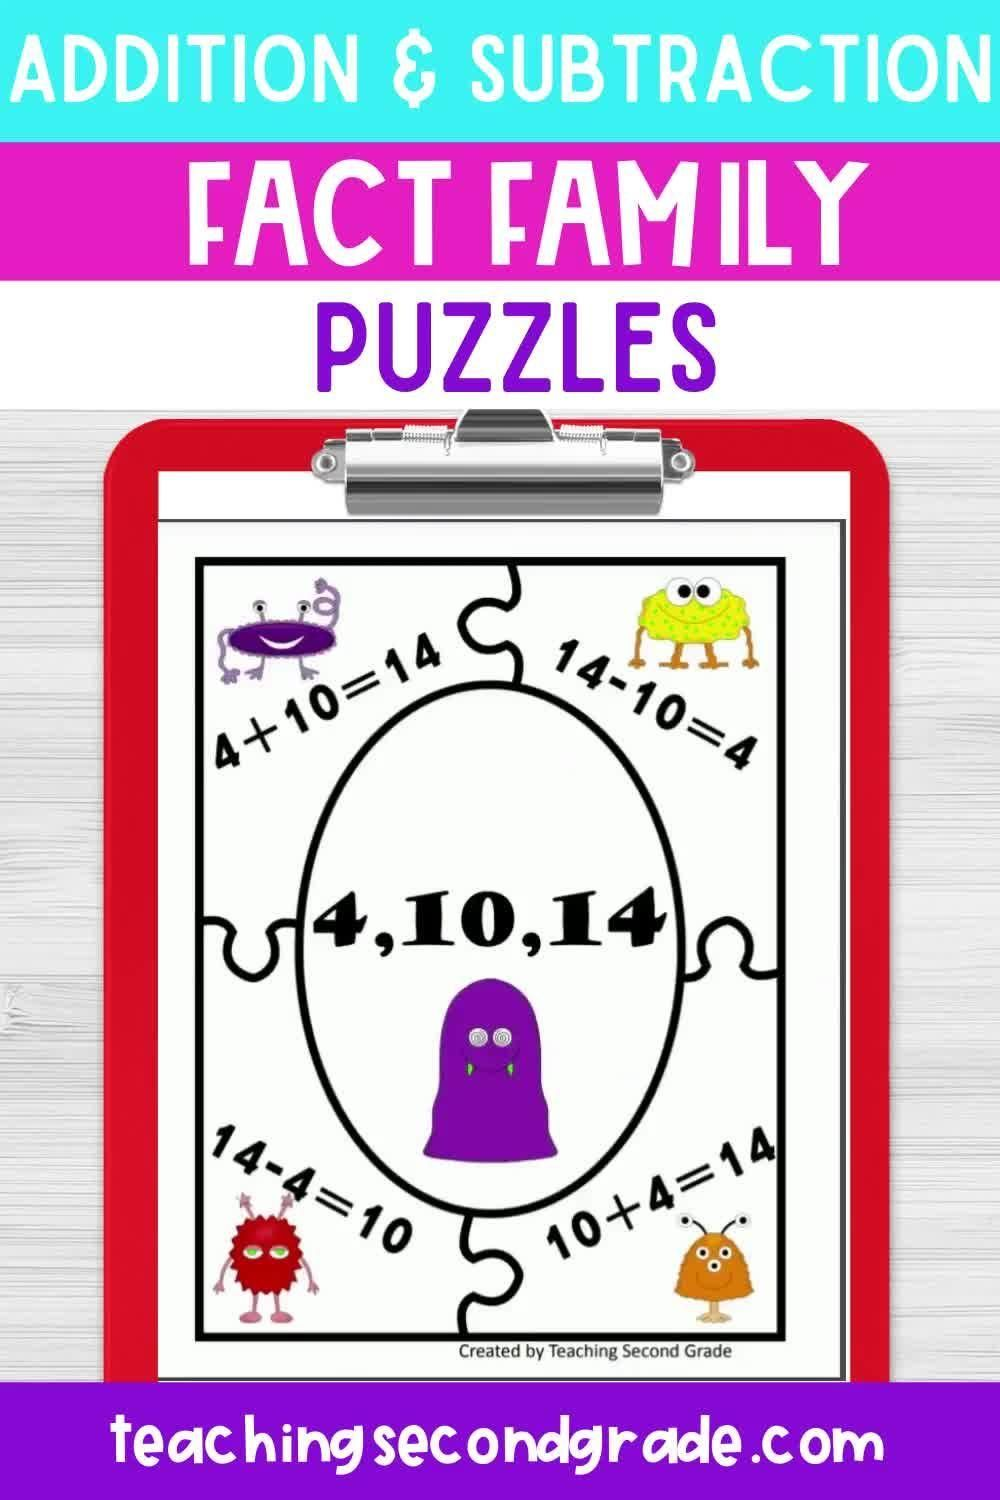 Addition And Subtraction Fact Families Video Video Subtraction Facts Fact Families Addition And Subtraction Related addition and subtraction facts